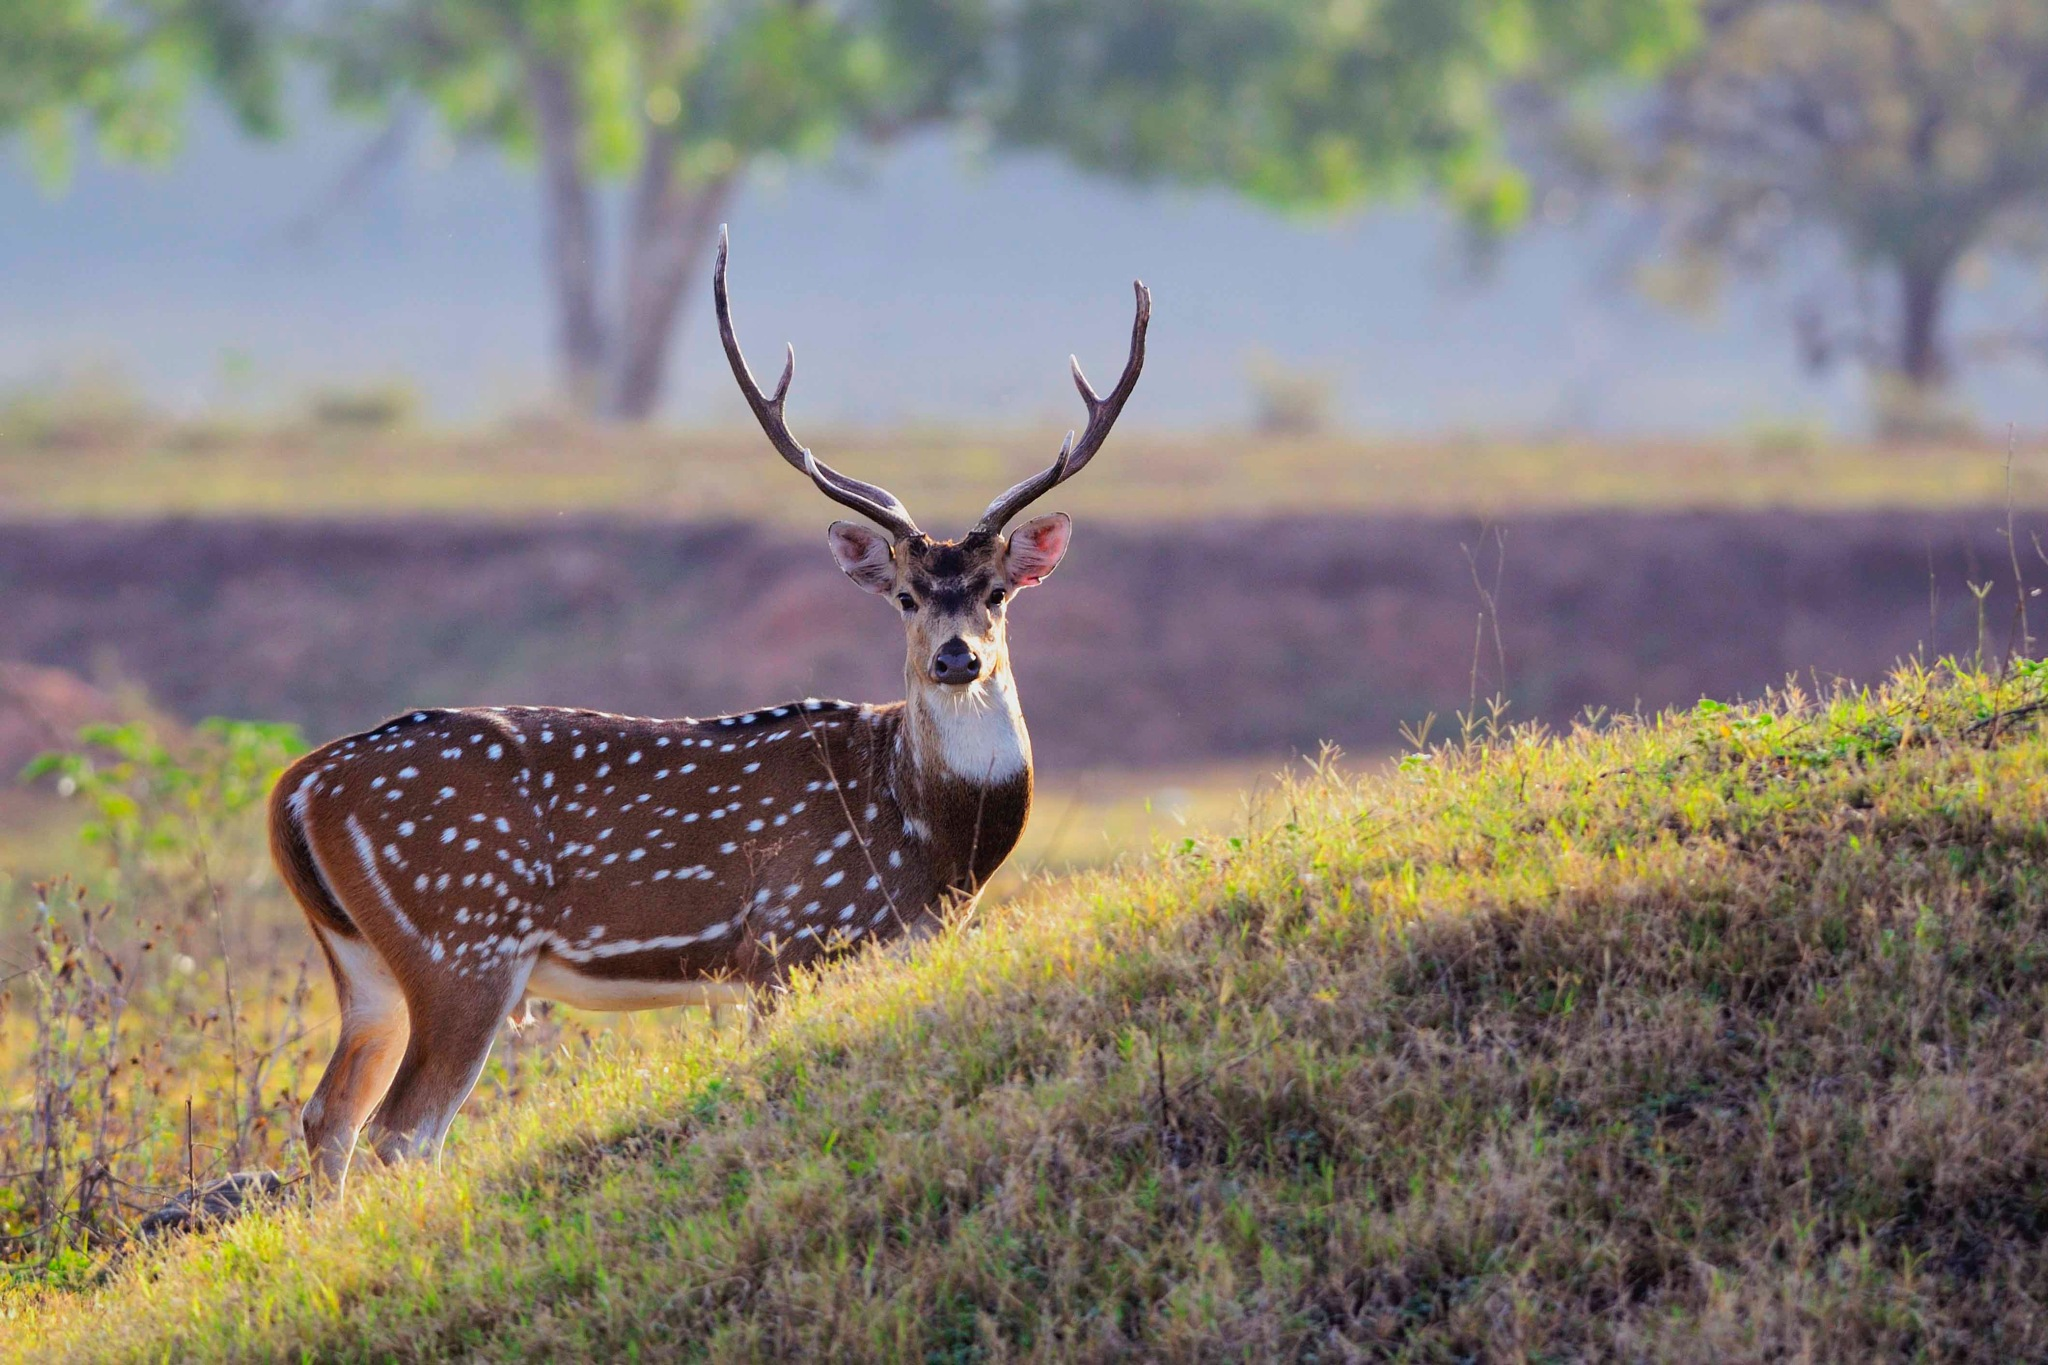 Spotted Deer, Pench, India by Tushar Shinde